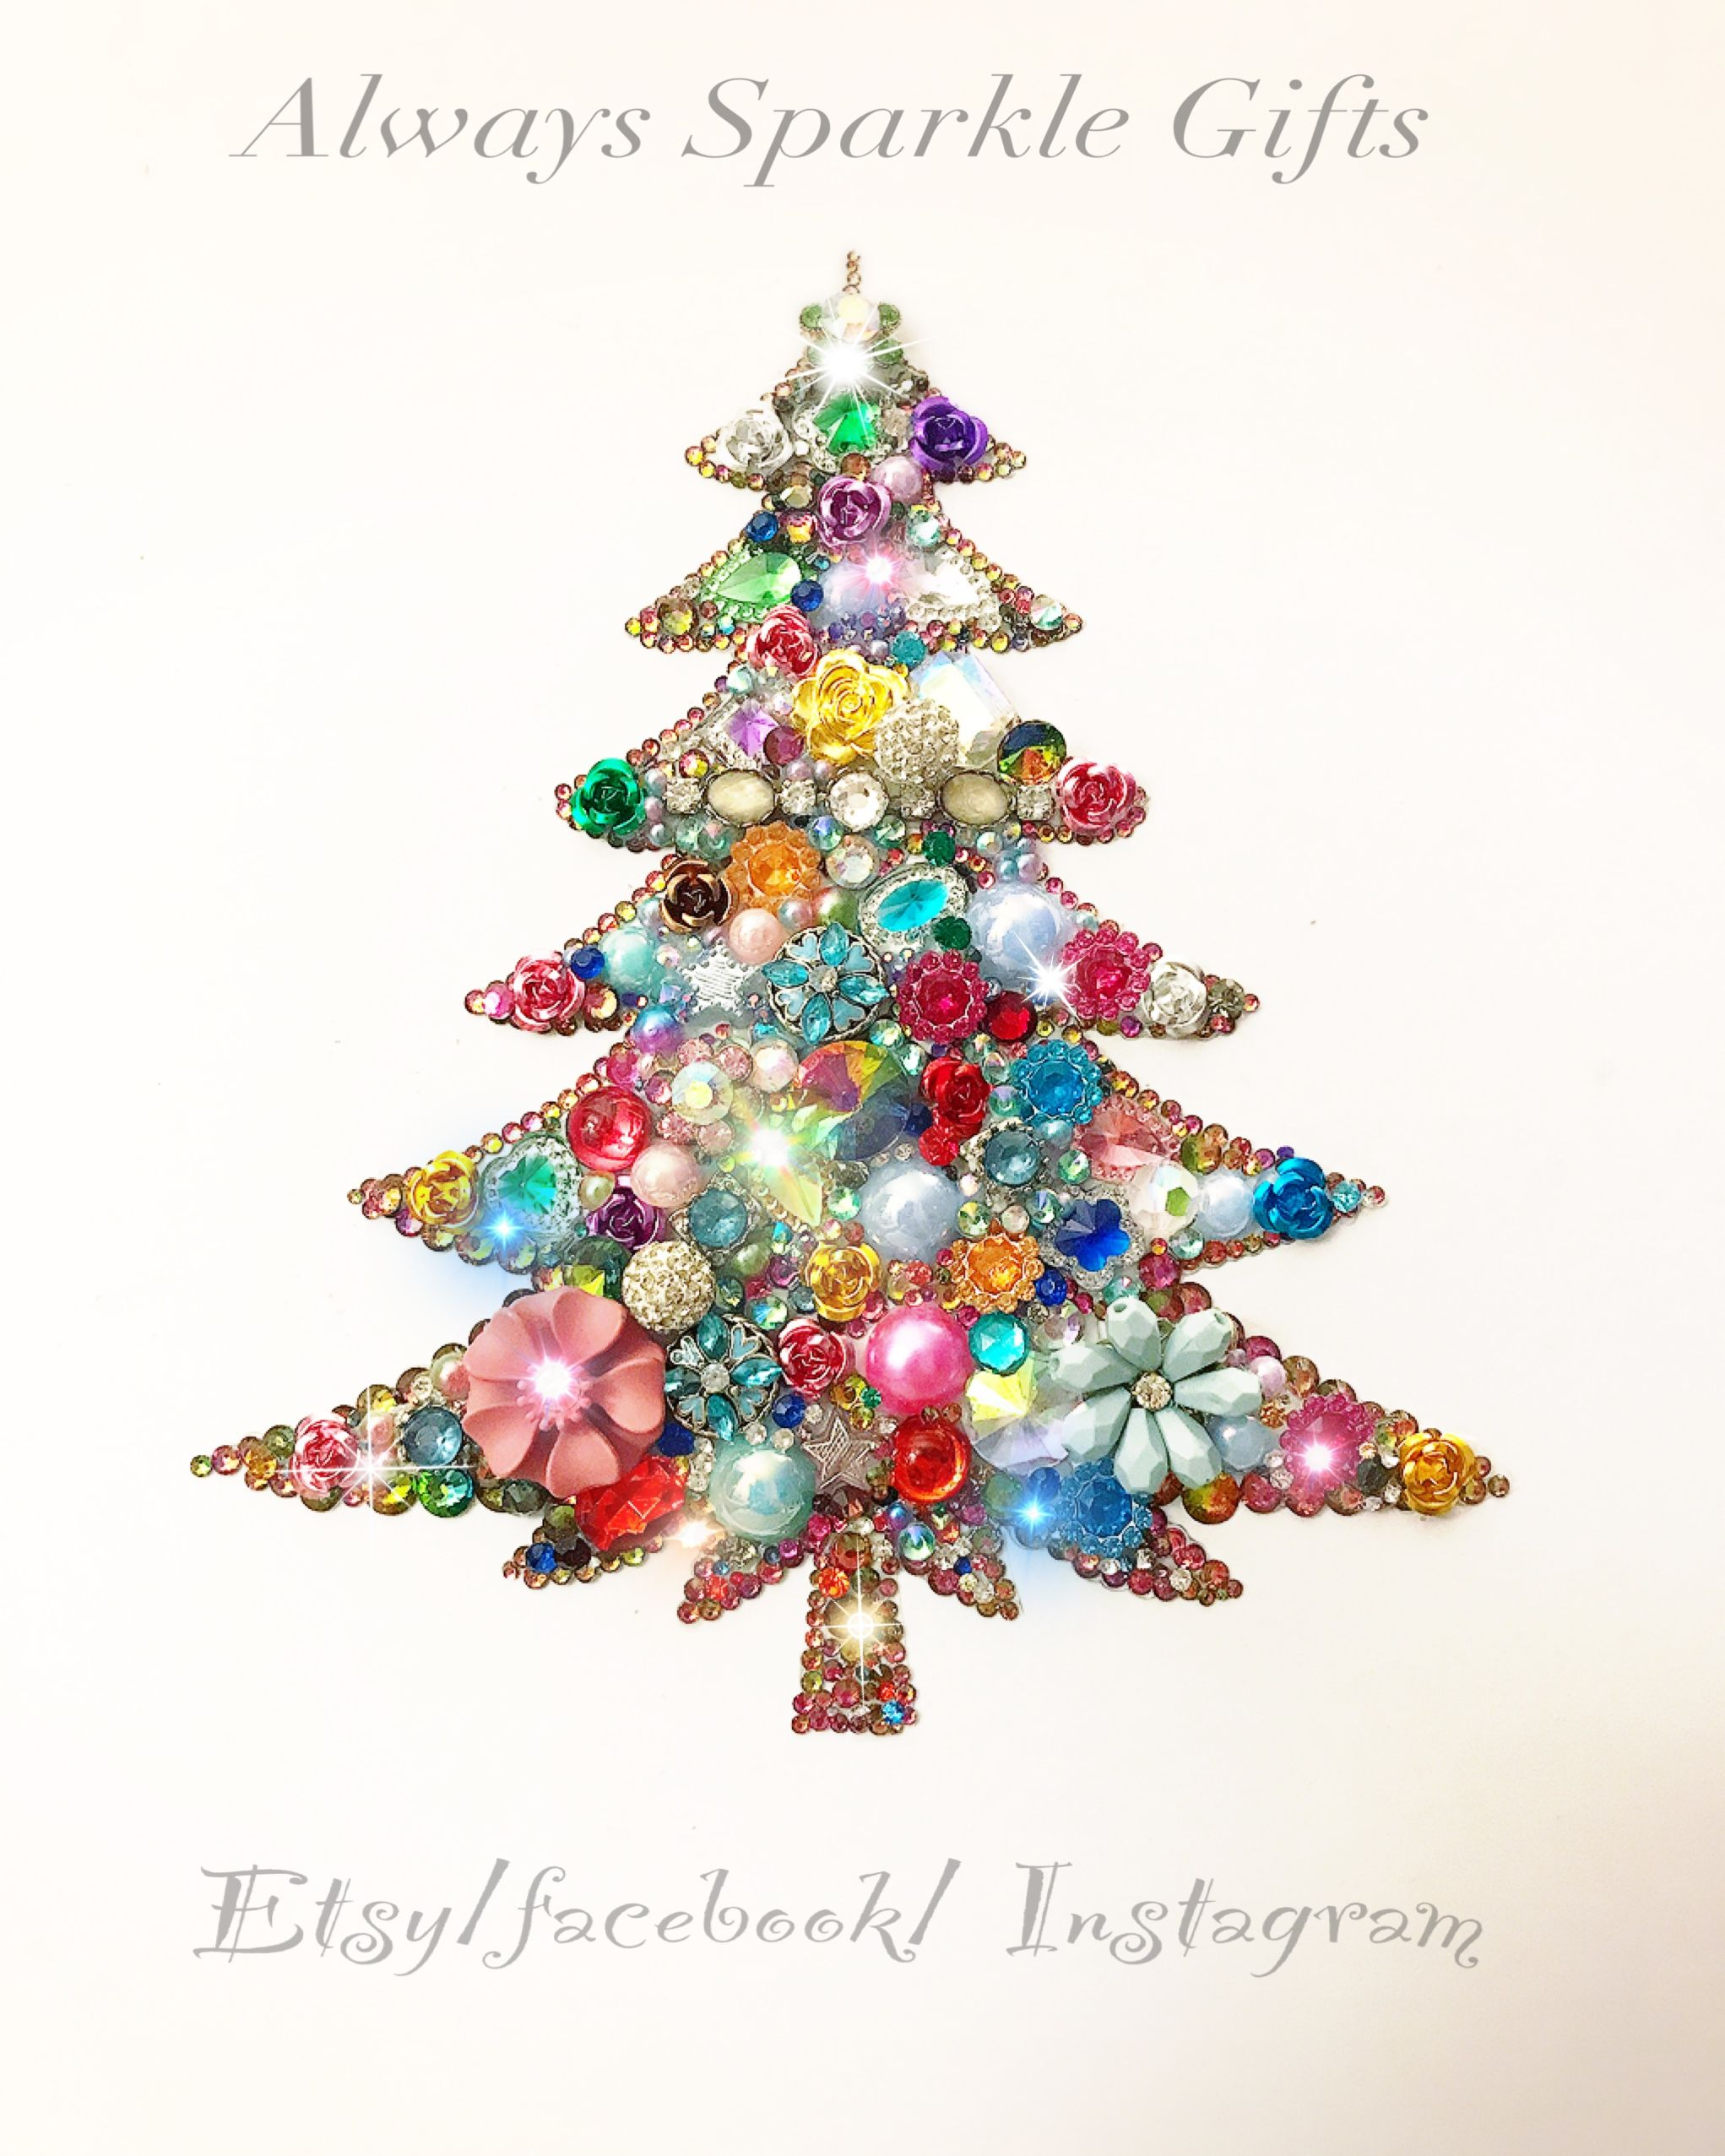 Vintage Style Christmas Tree Button Art Etsy Always Sparkle Gifts Buttons Crafts Diy Sparkle Gift Diy Christmas Gifts